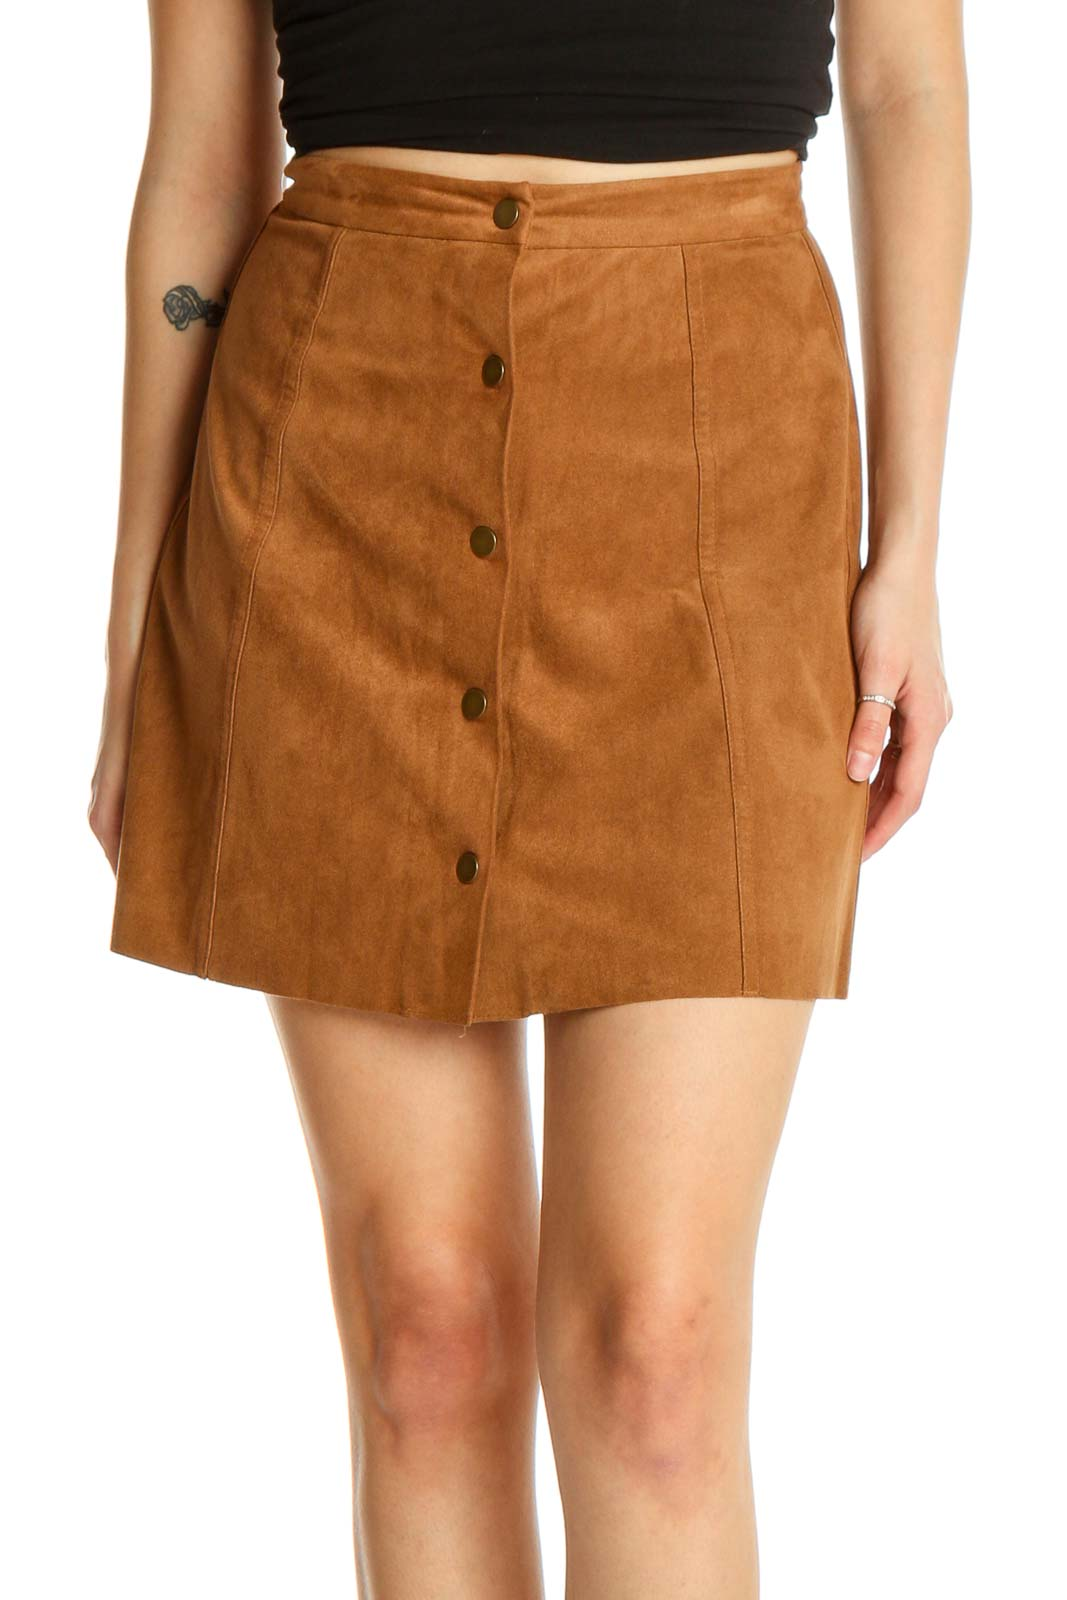 Brown Solid Chic A-Line Skirt Front